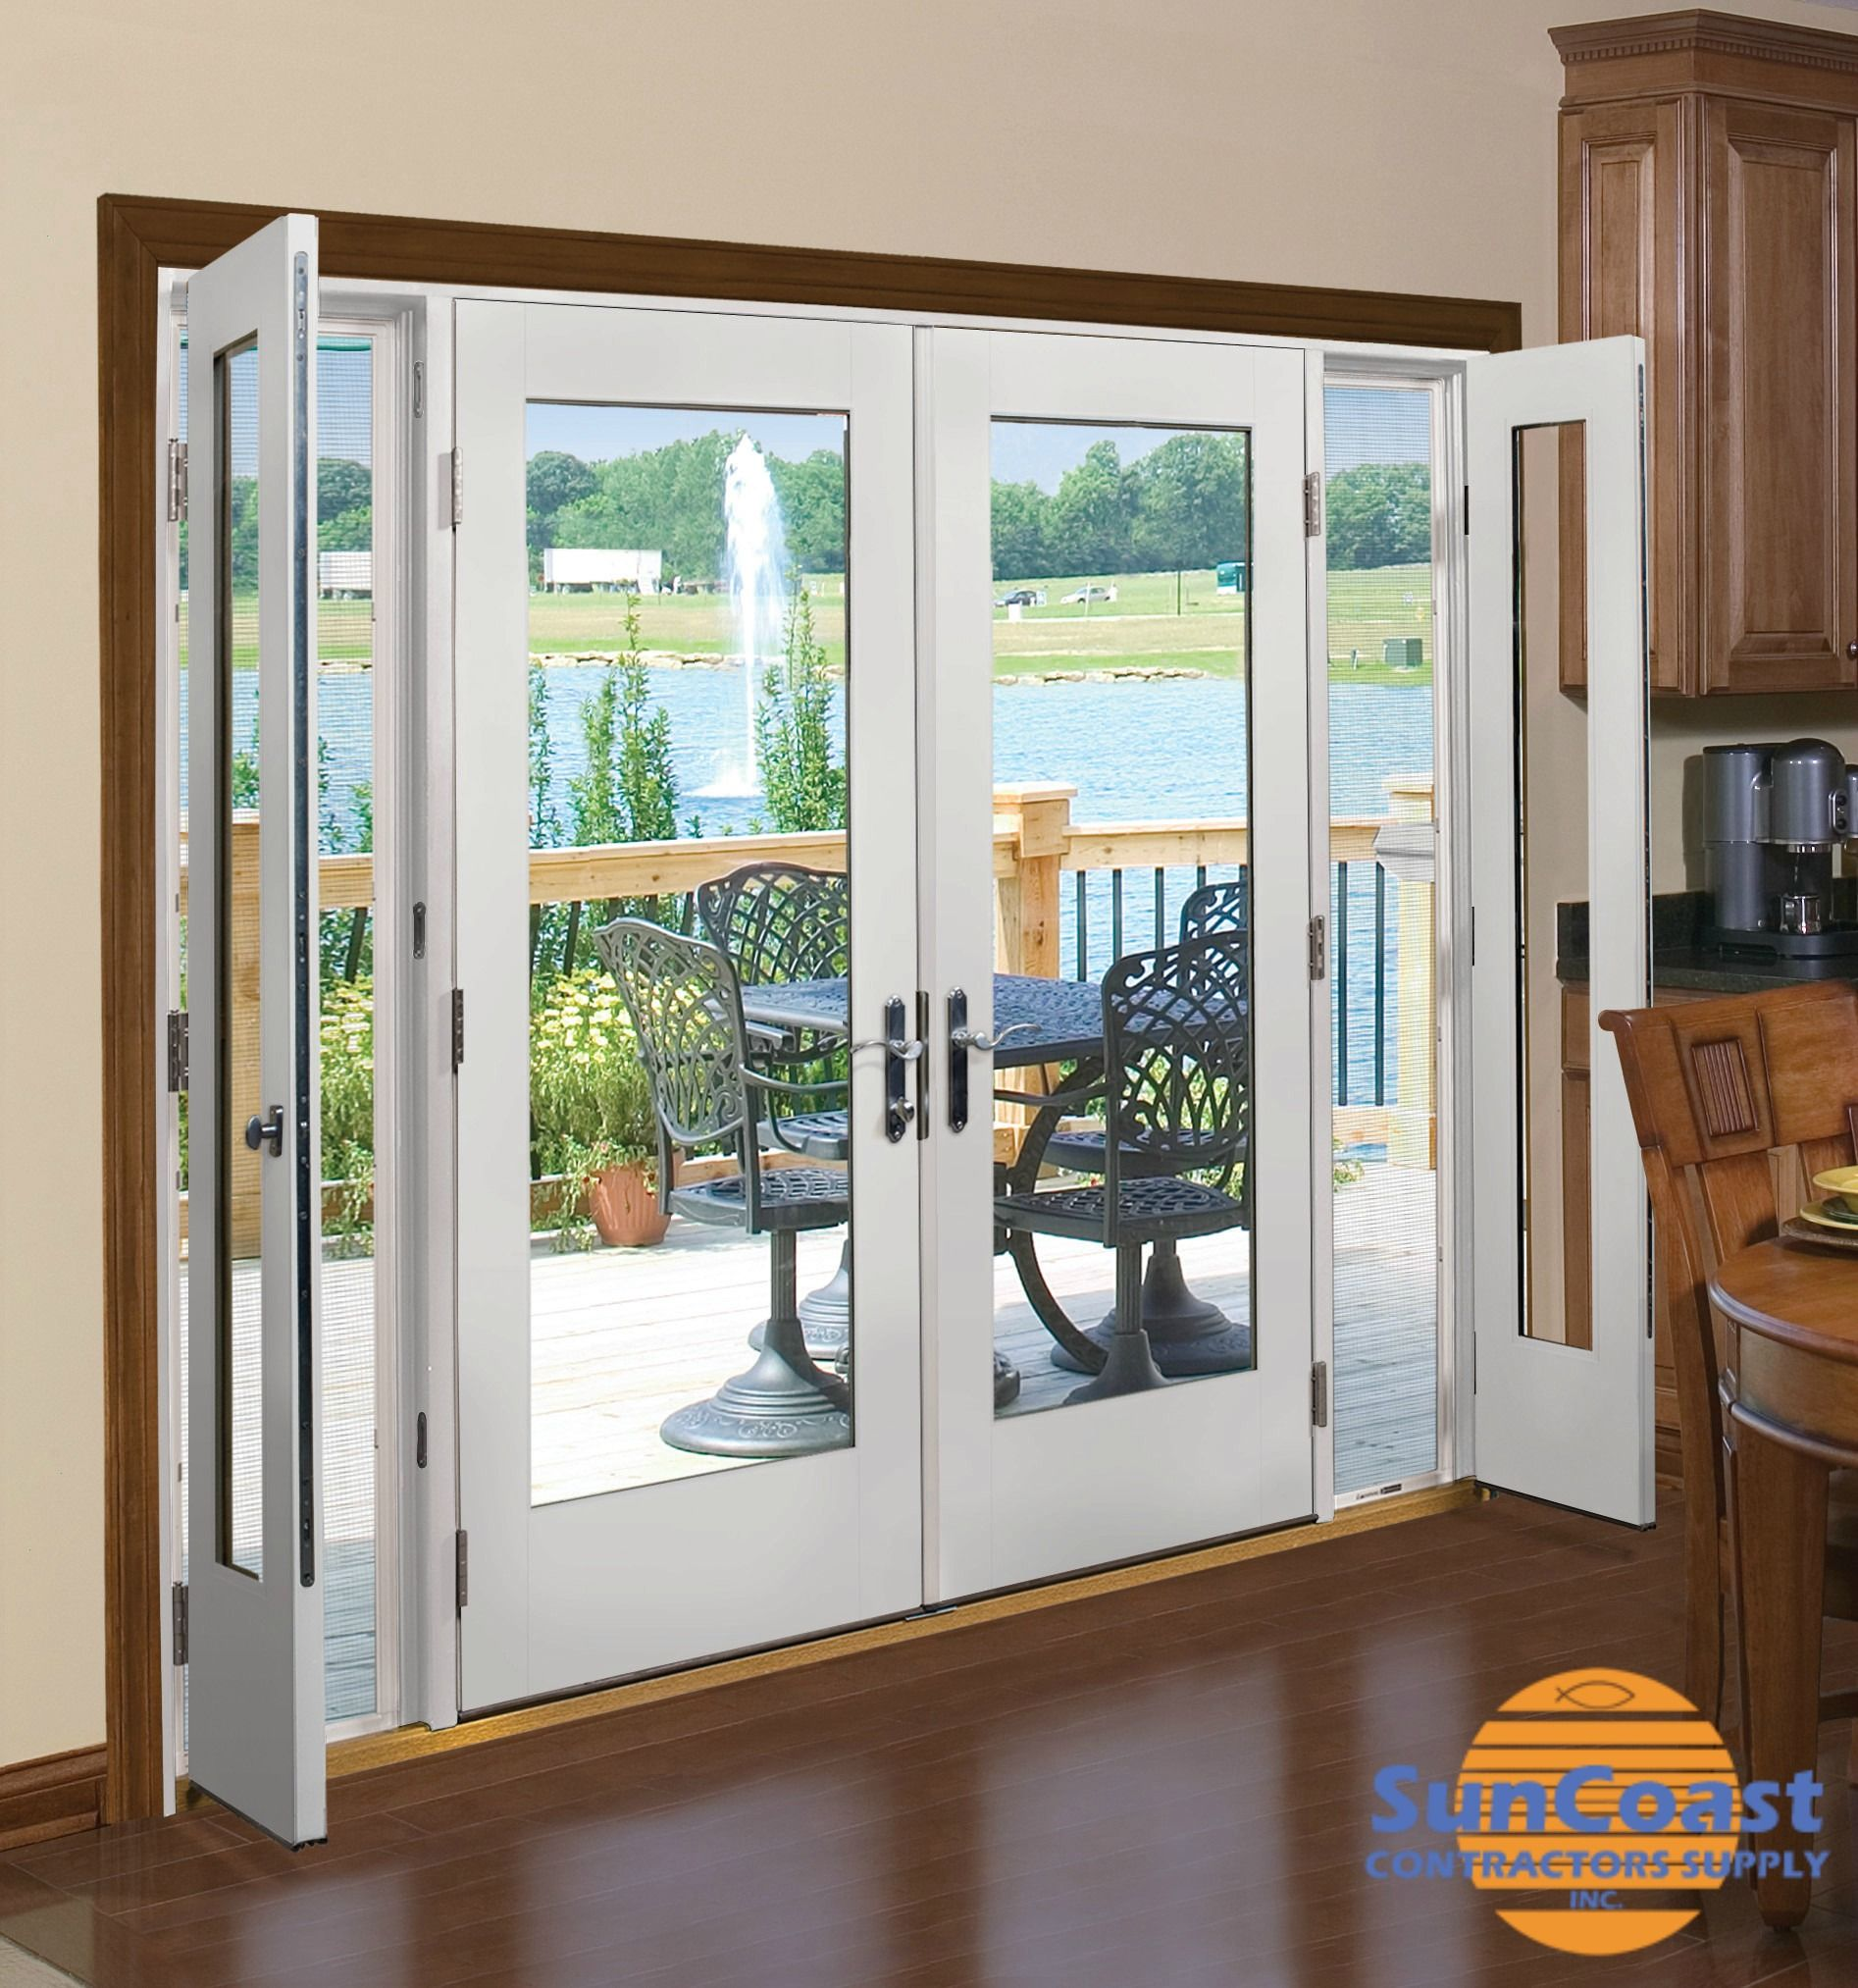 We Offer A Wide Range Of Entry Doors Including Therma Tru Smooth Star With Flush Glazed French Doors Patio French Doors Exterior French Doors With Sidelights